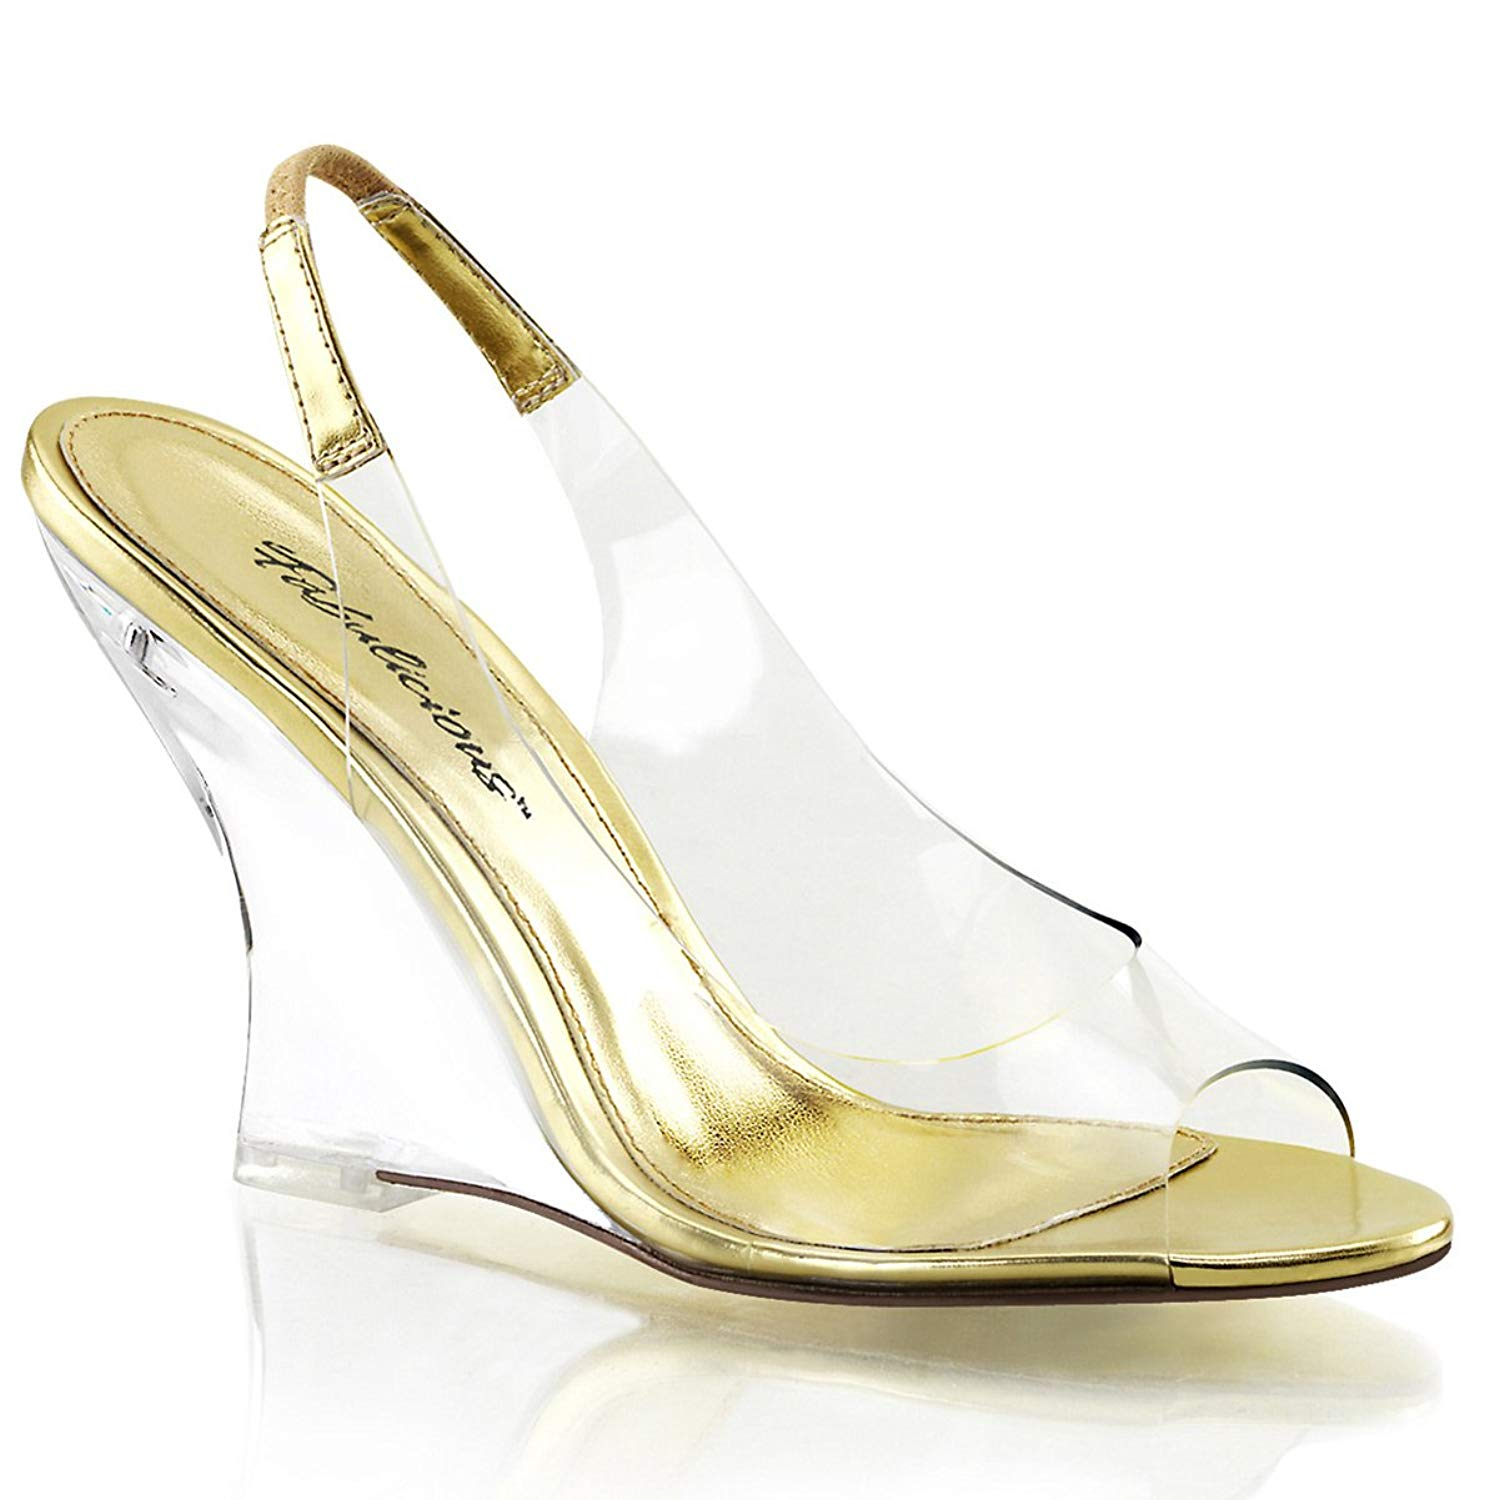 63a17e0365a Get Quotations · Summitfashions Womens Clear and Gold Slingback Sandals  Shoes with 4 Inch Clear Wedge Heels